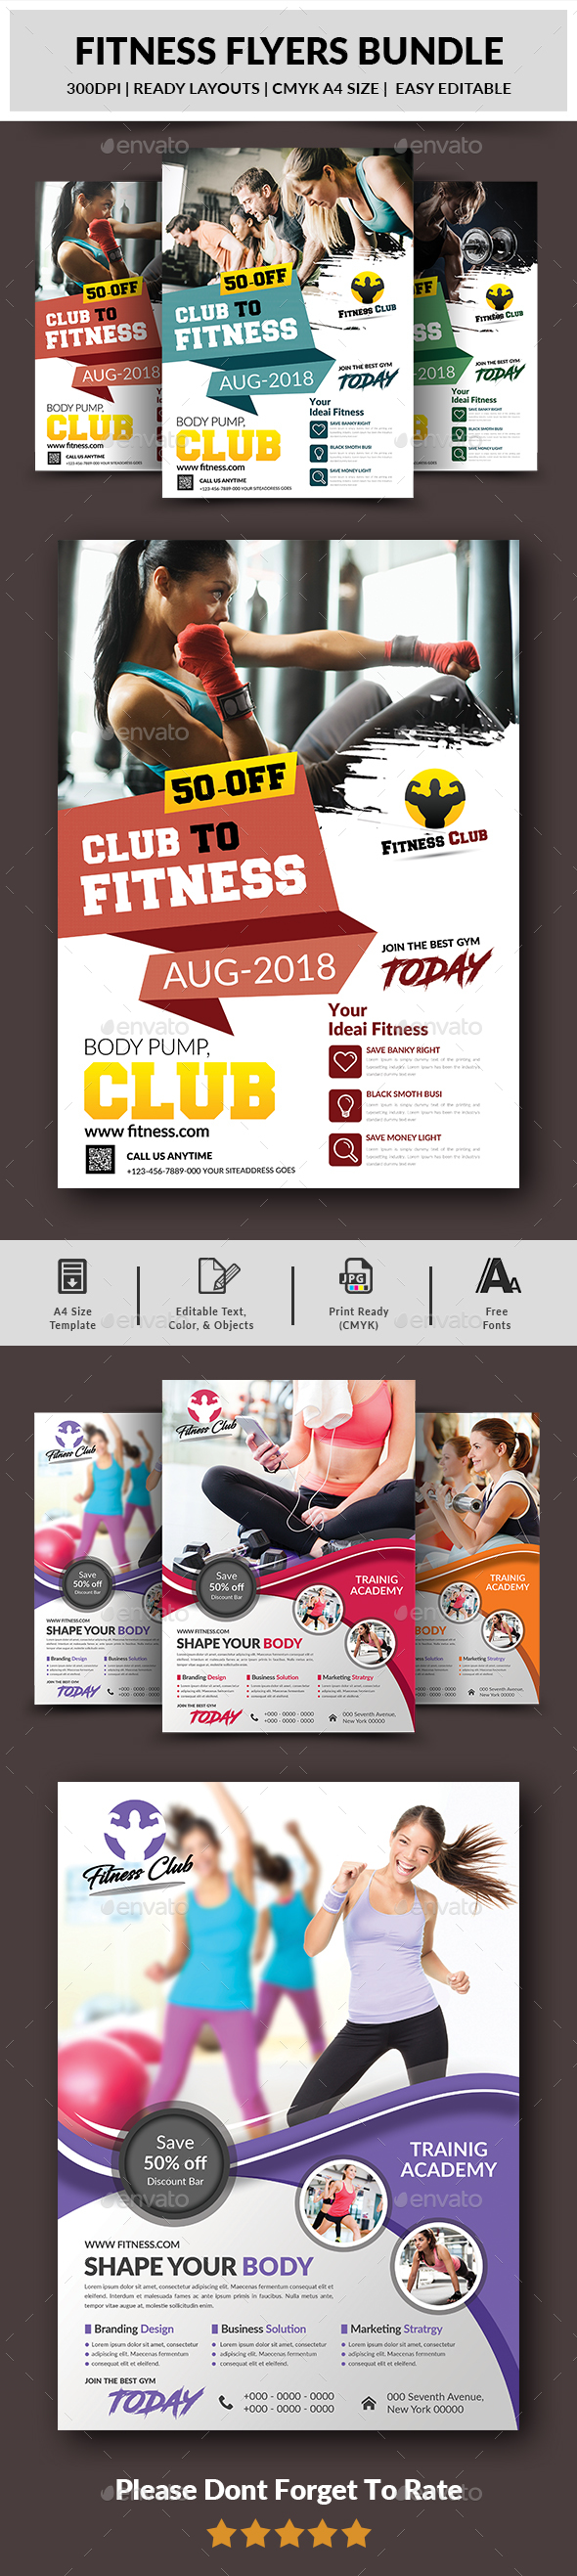 Fitness Flyers Bundle - Corporate Flyers